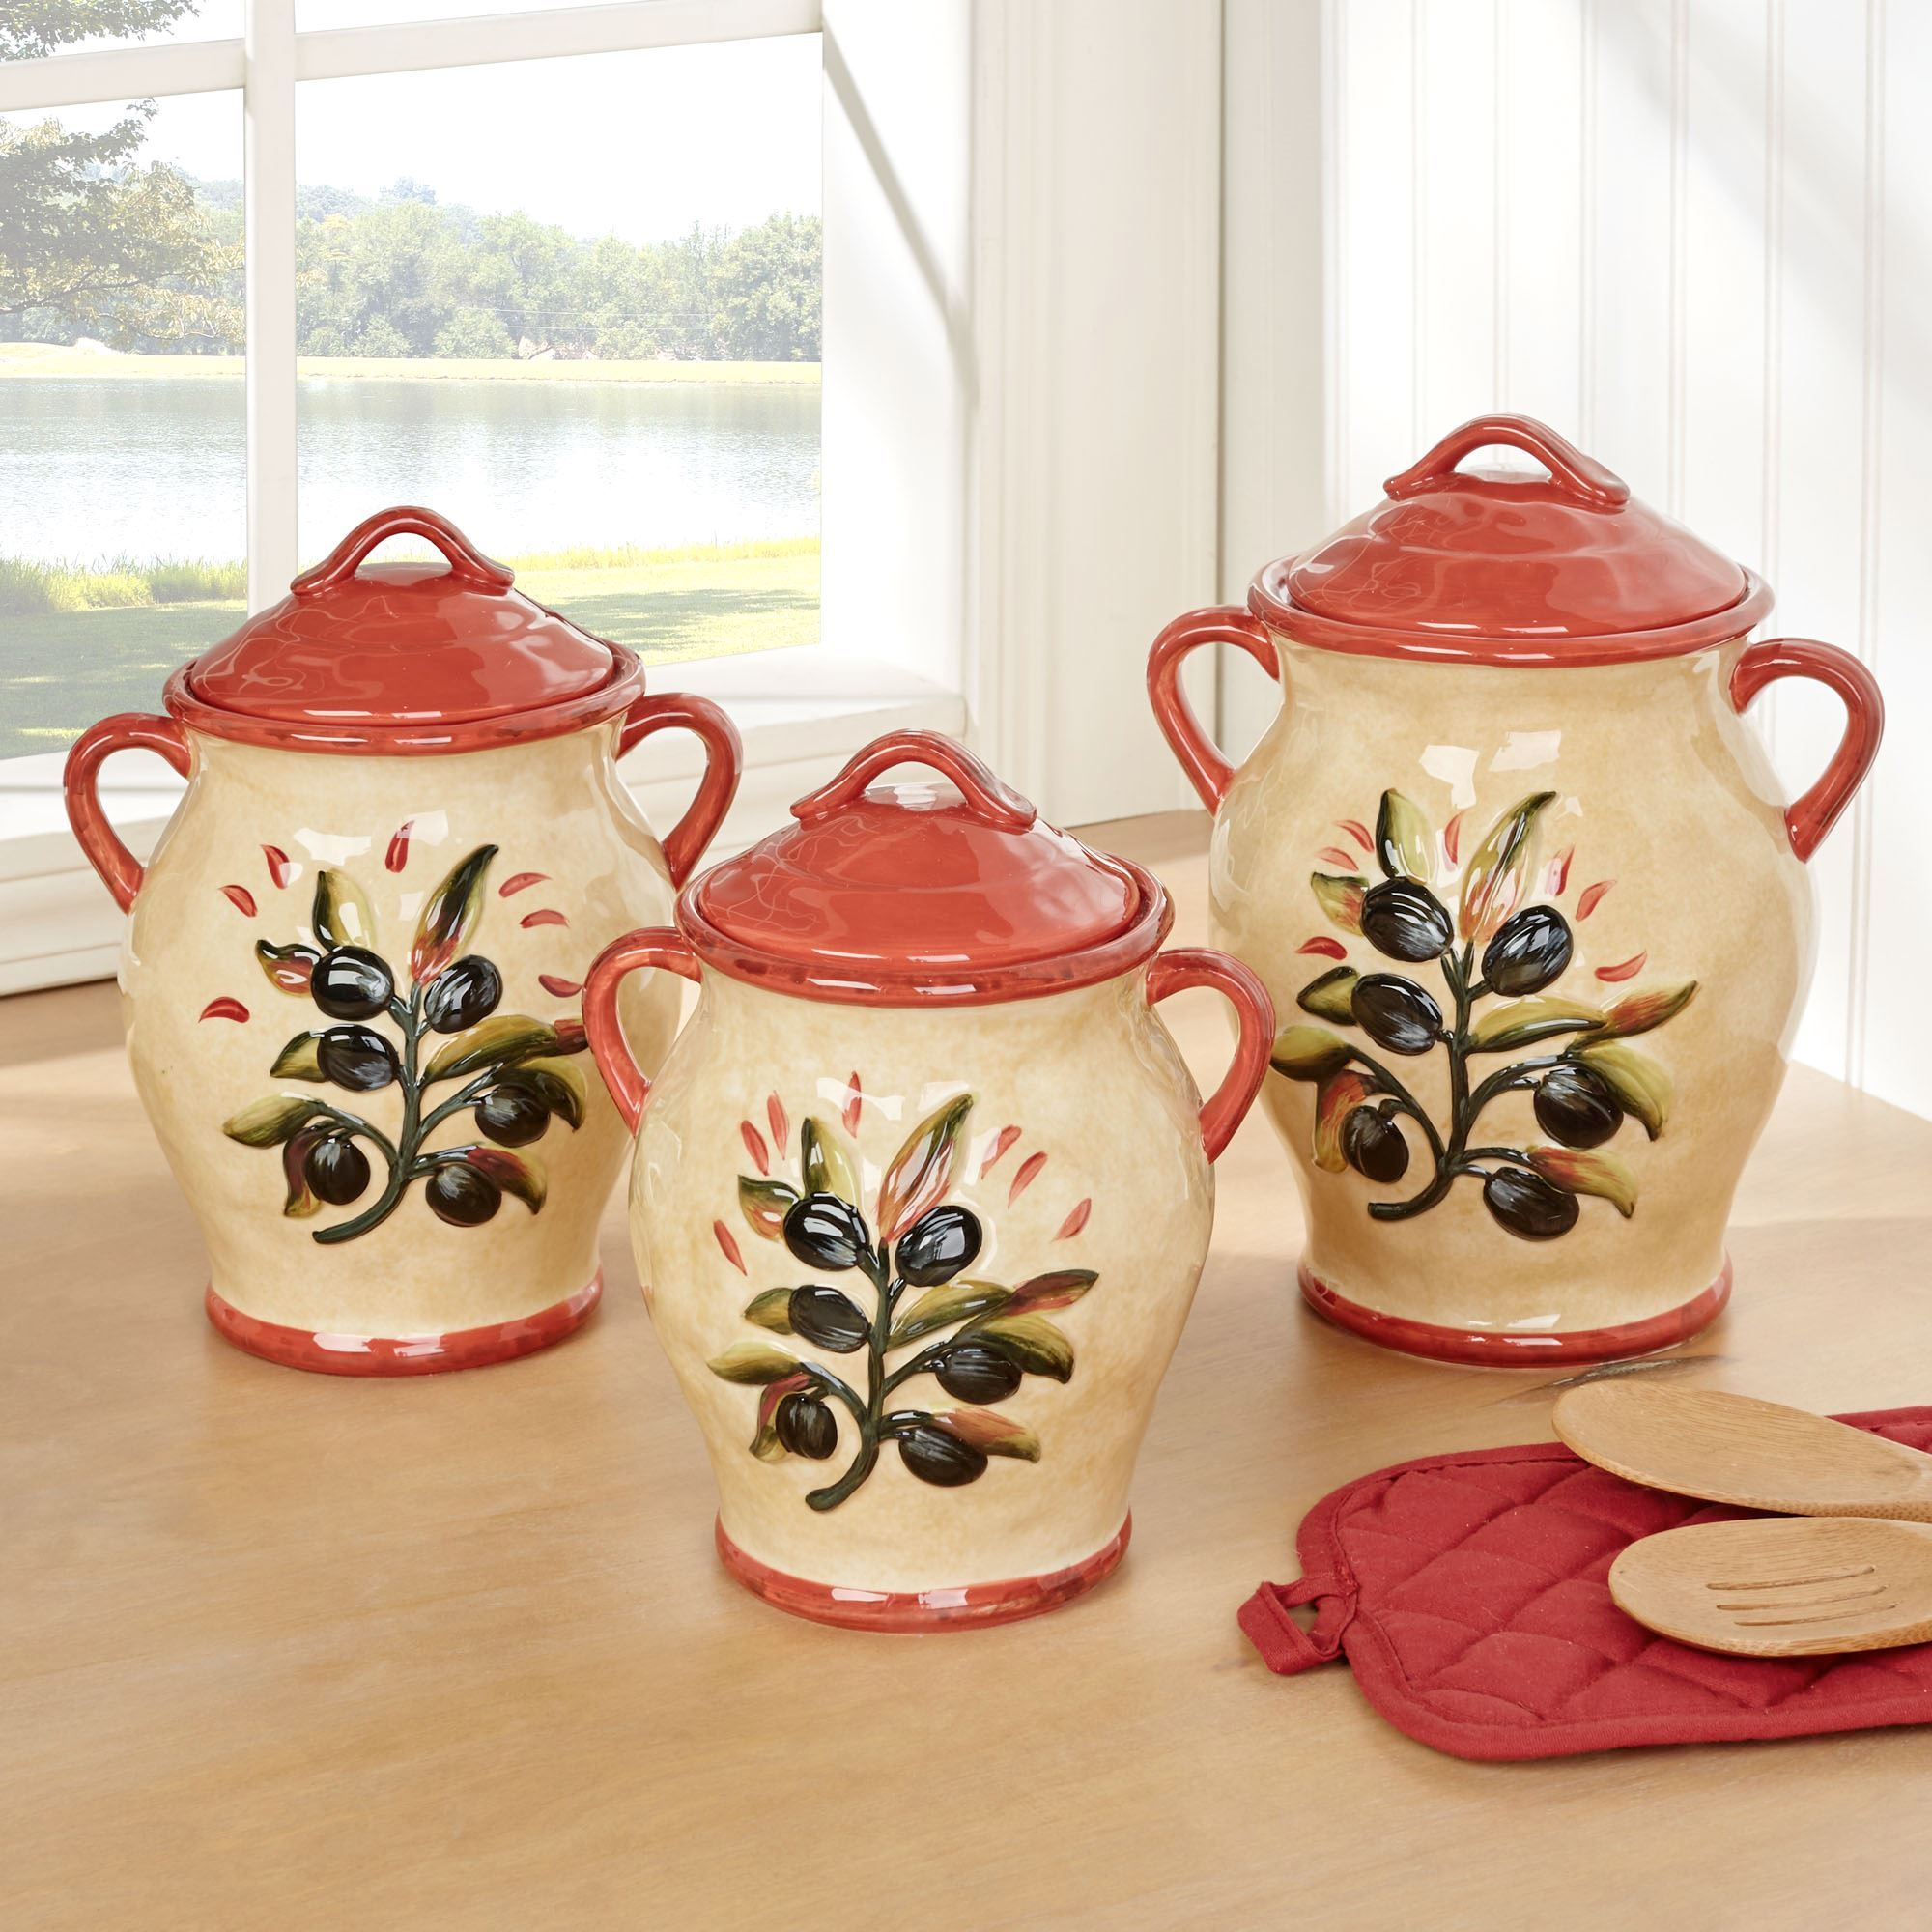 Umbria Olive Italian Themed Kitchen Canister Set